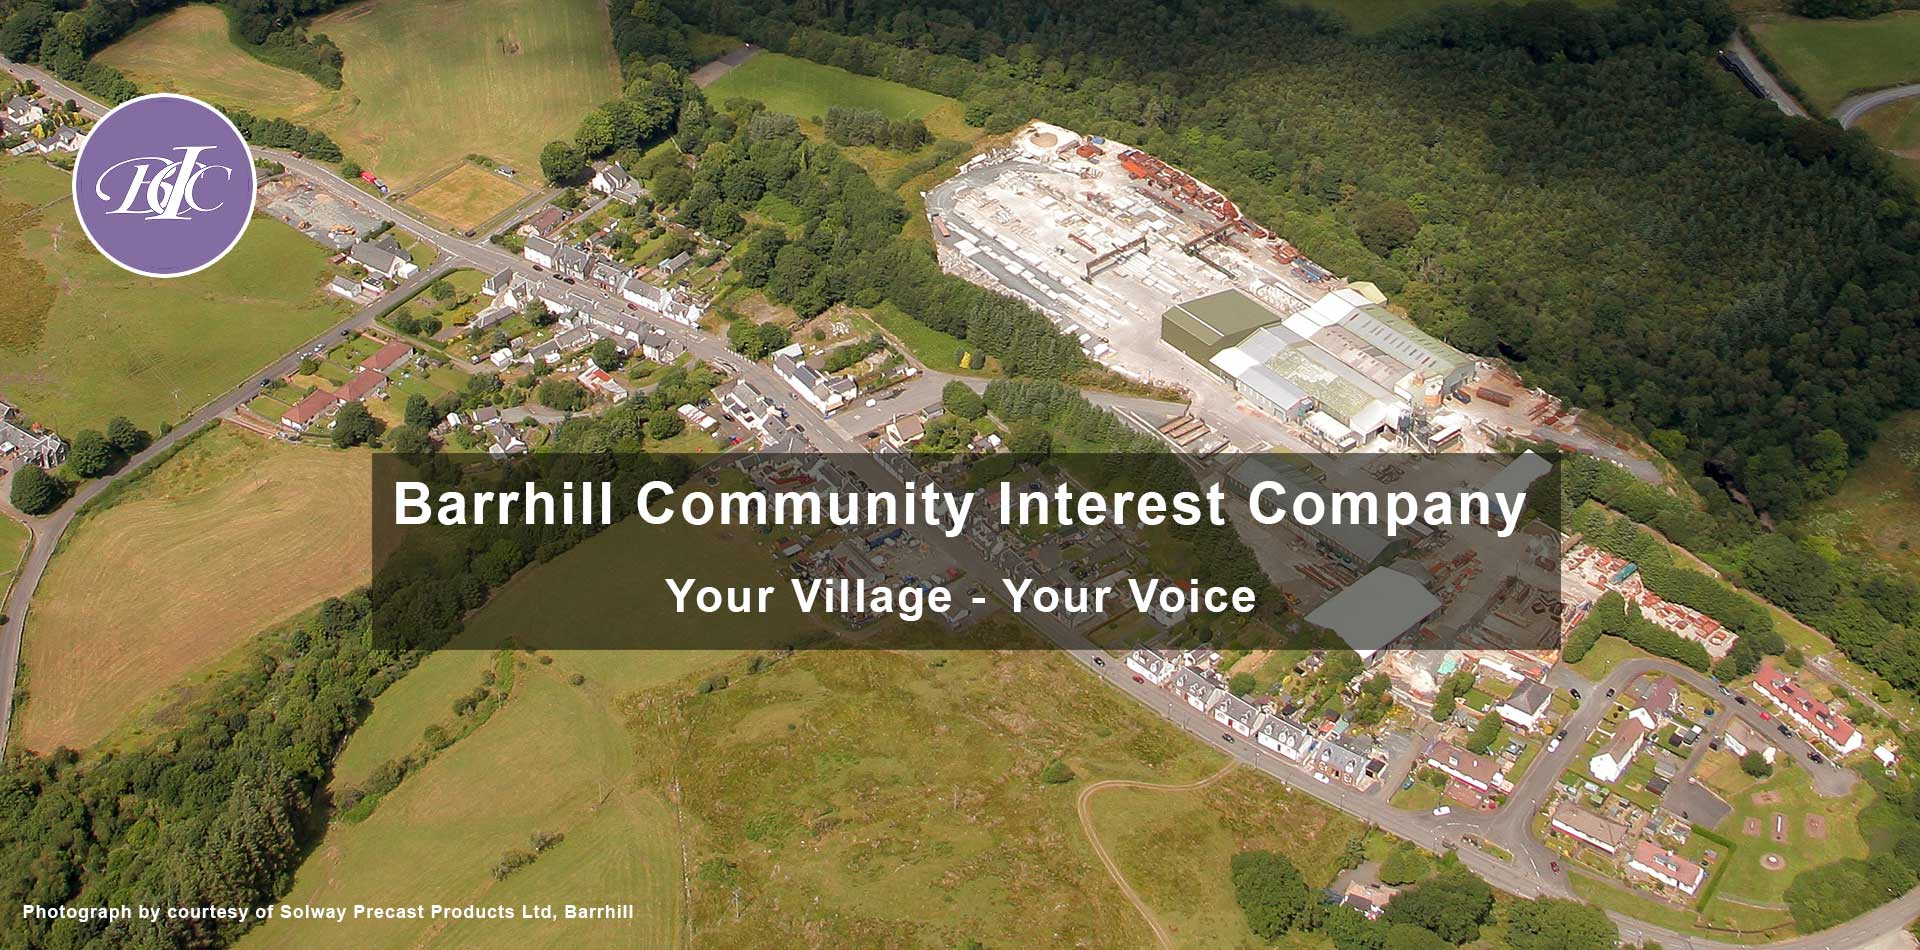 Aerial view of Barrhill